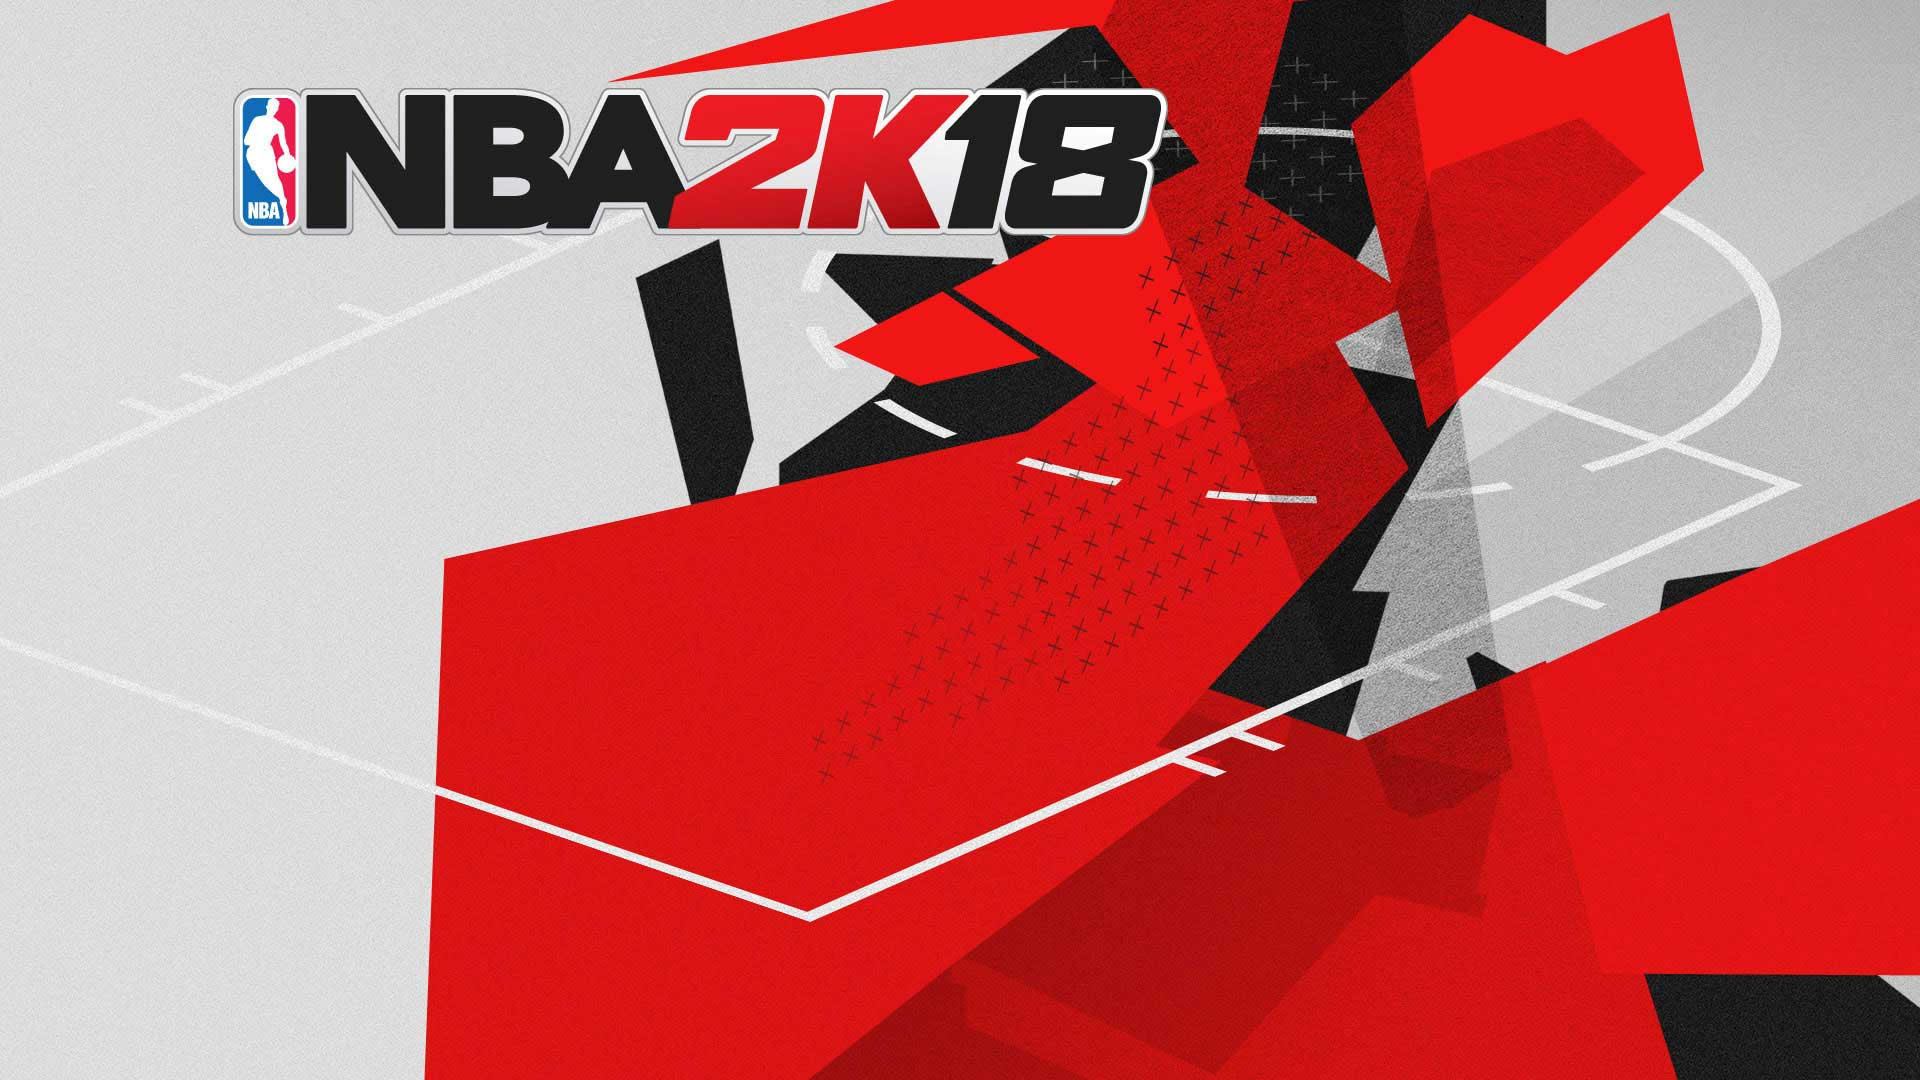 GAMEGOCODE.COM NBA 2K18 Vc and Mt FOR ANDROID IOS PC PLAYSTATION | 100% WORKING METHOD | GET UNLIMITED RESOURCES NOW